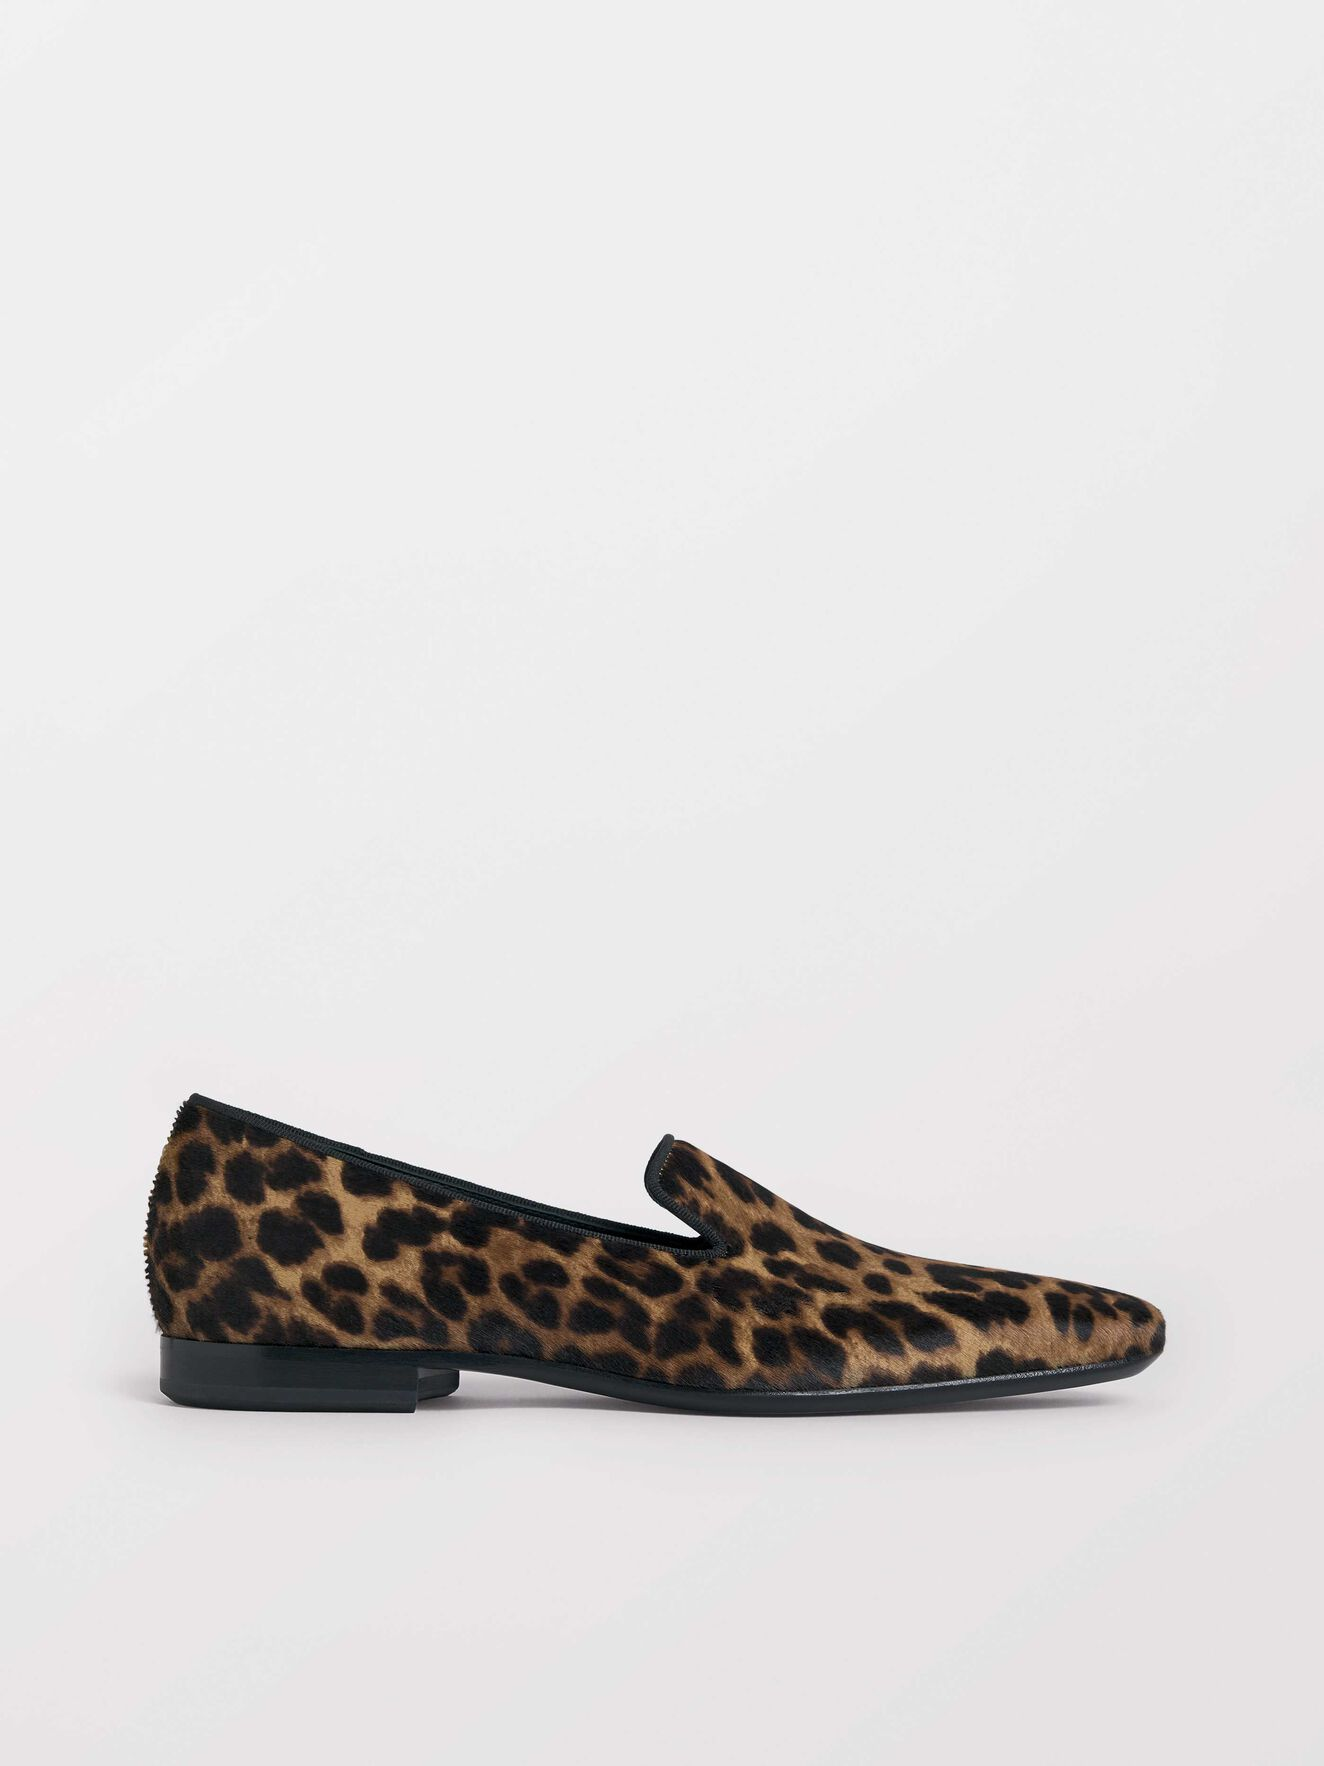 Sartor P Loafer in ARTWORK from Tiger of Sweden